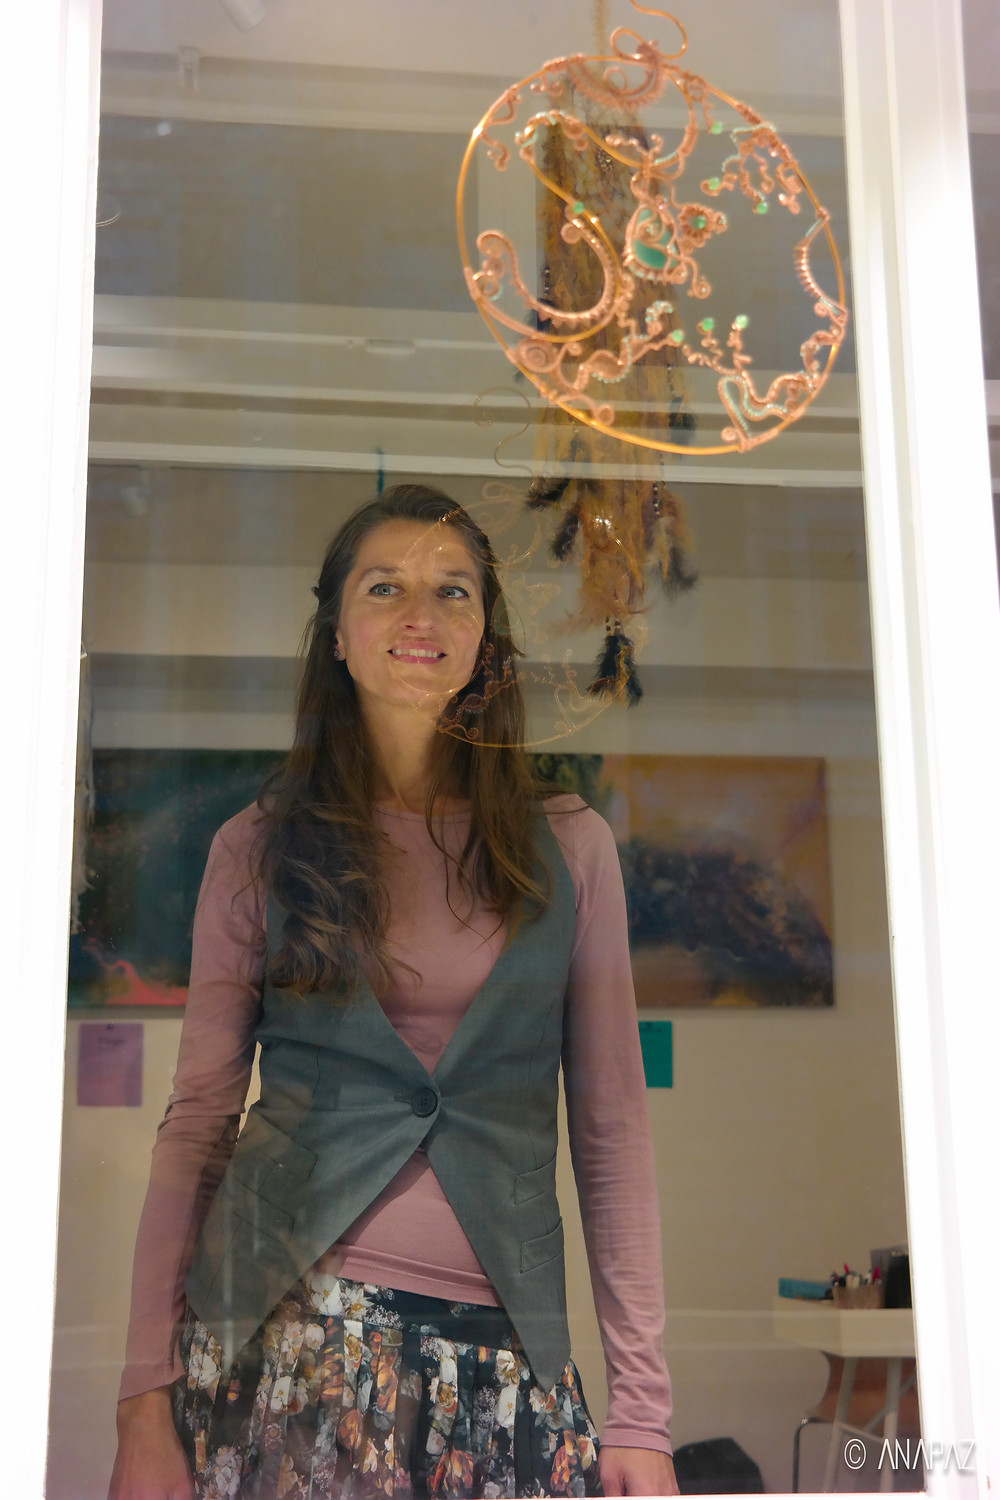 Happy me at the first exhibition in Zürich - Tart Gallery